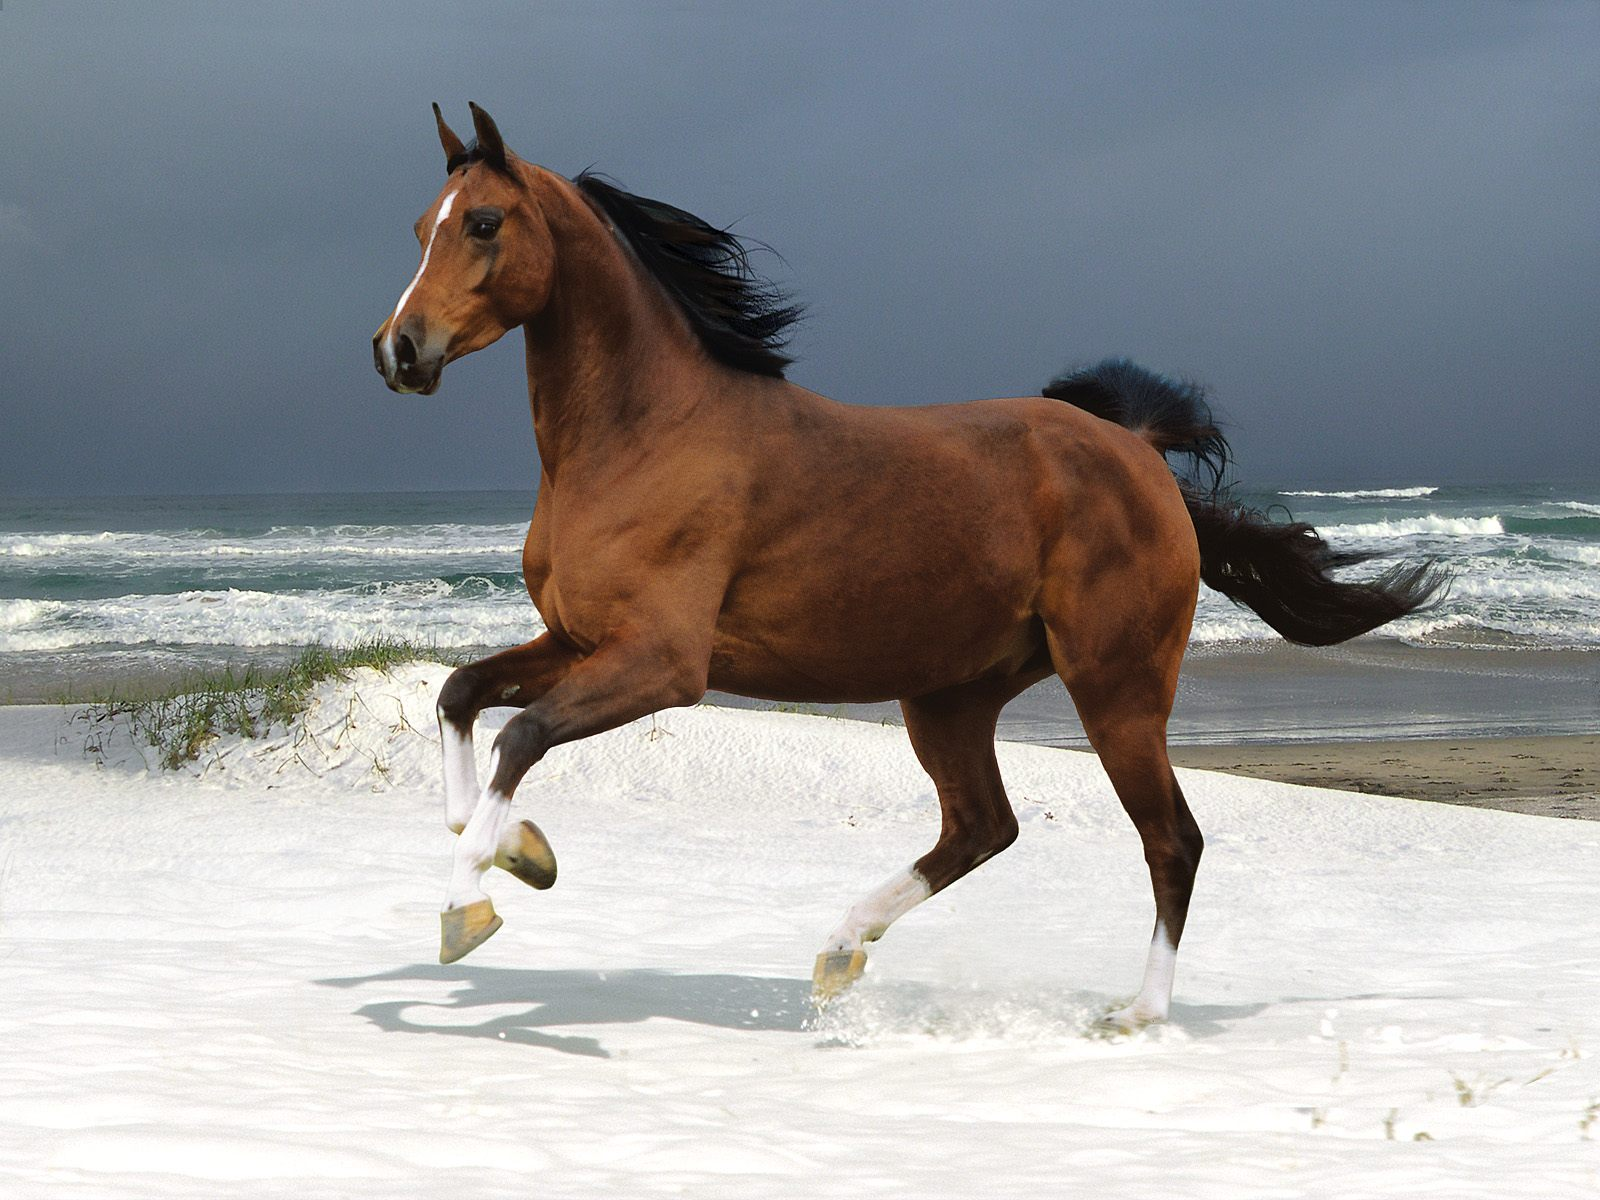 Wallpaper of a brown horse in gallop on the beach 1600x1200